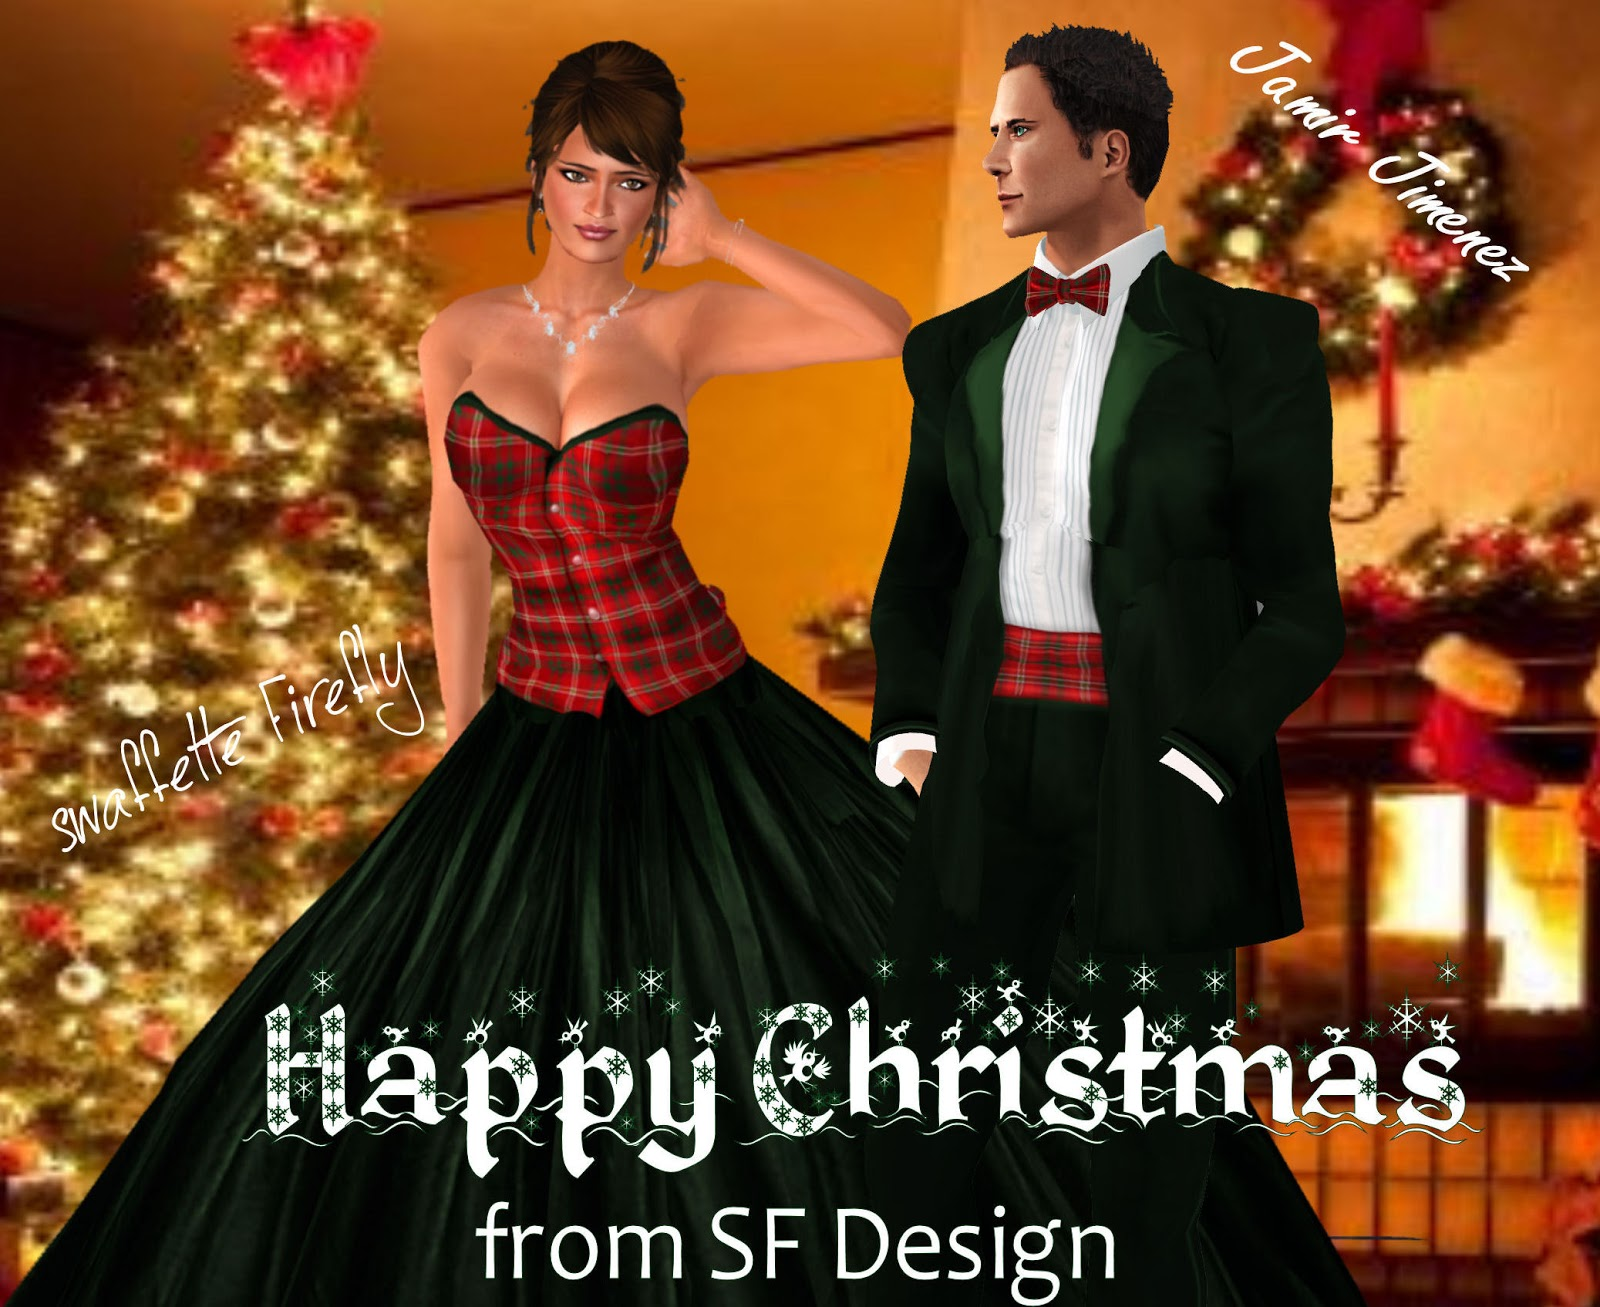 sf design - avatar clothing by swaffette Firefly: Free Gown and Tux ...